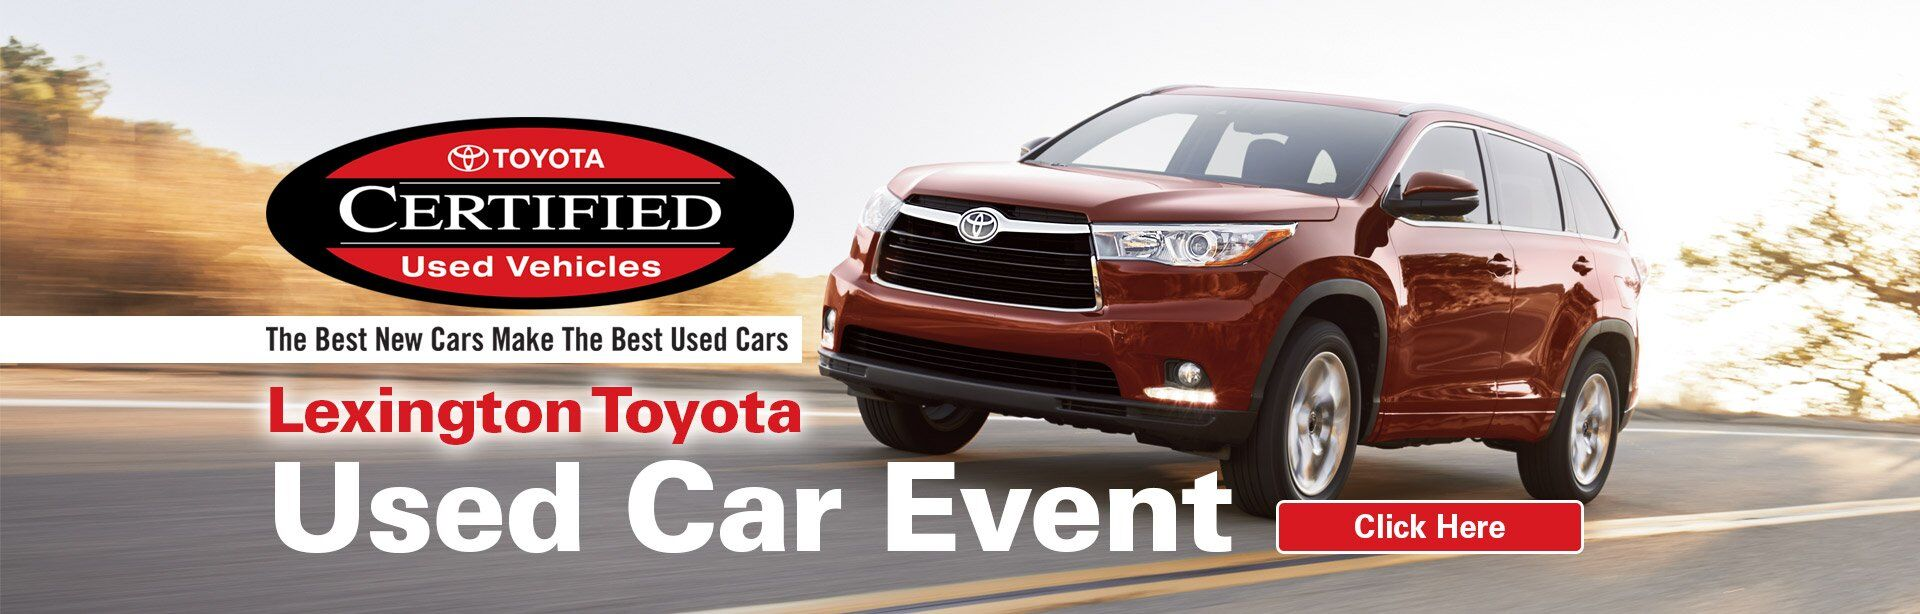 Used Car Event